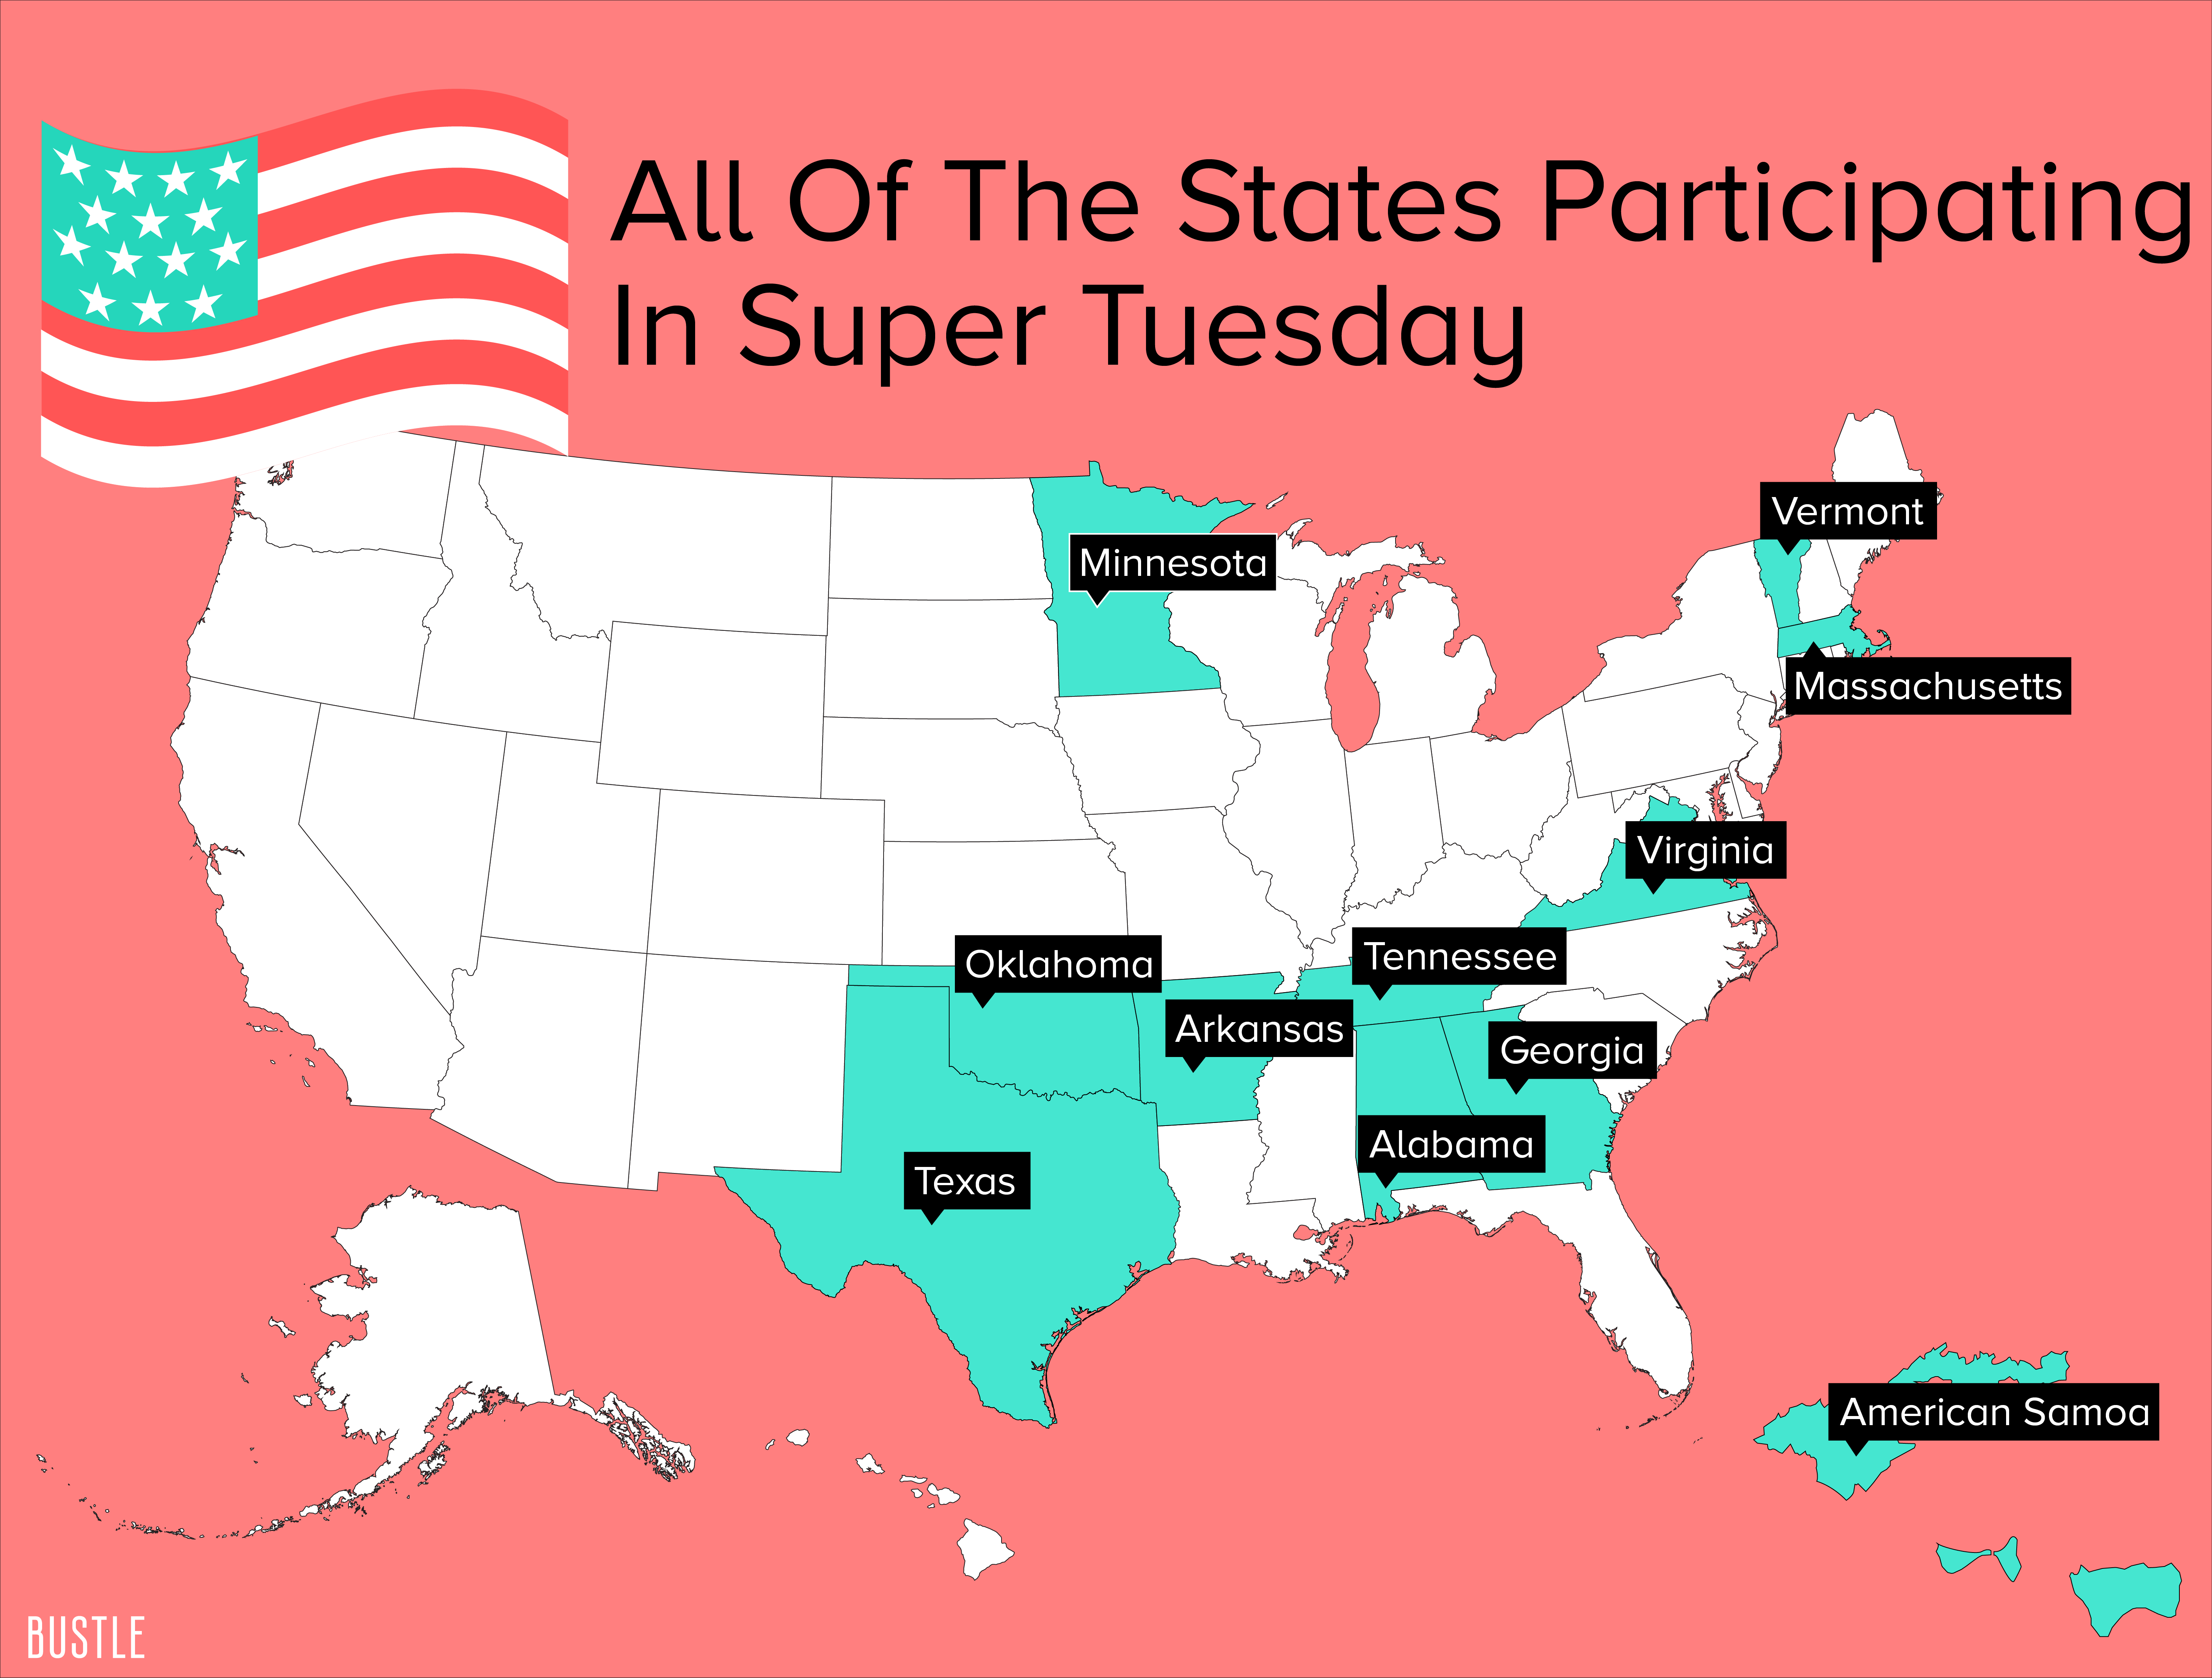 what are we voting for on super tuesday in alabama